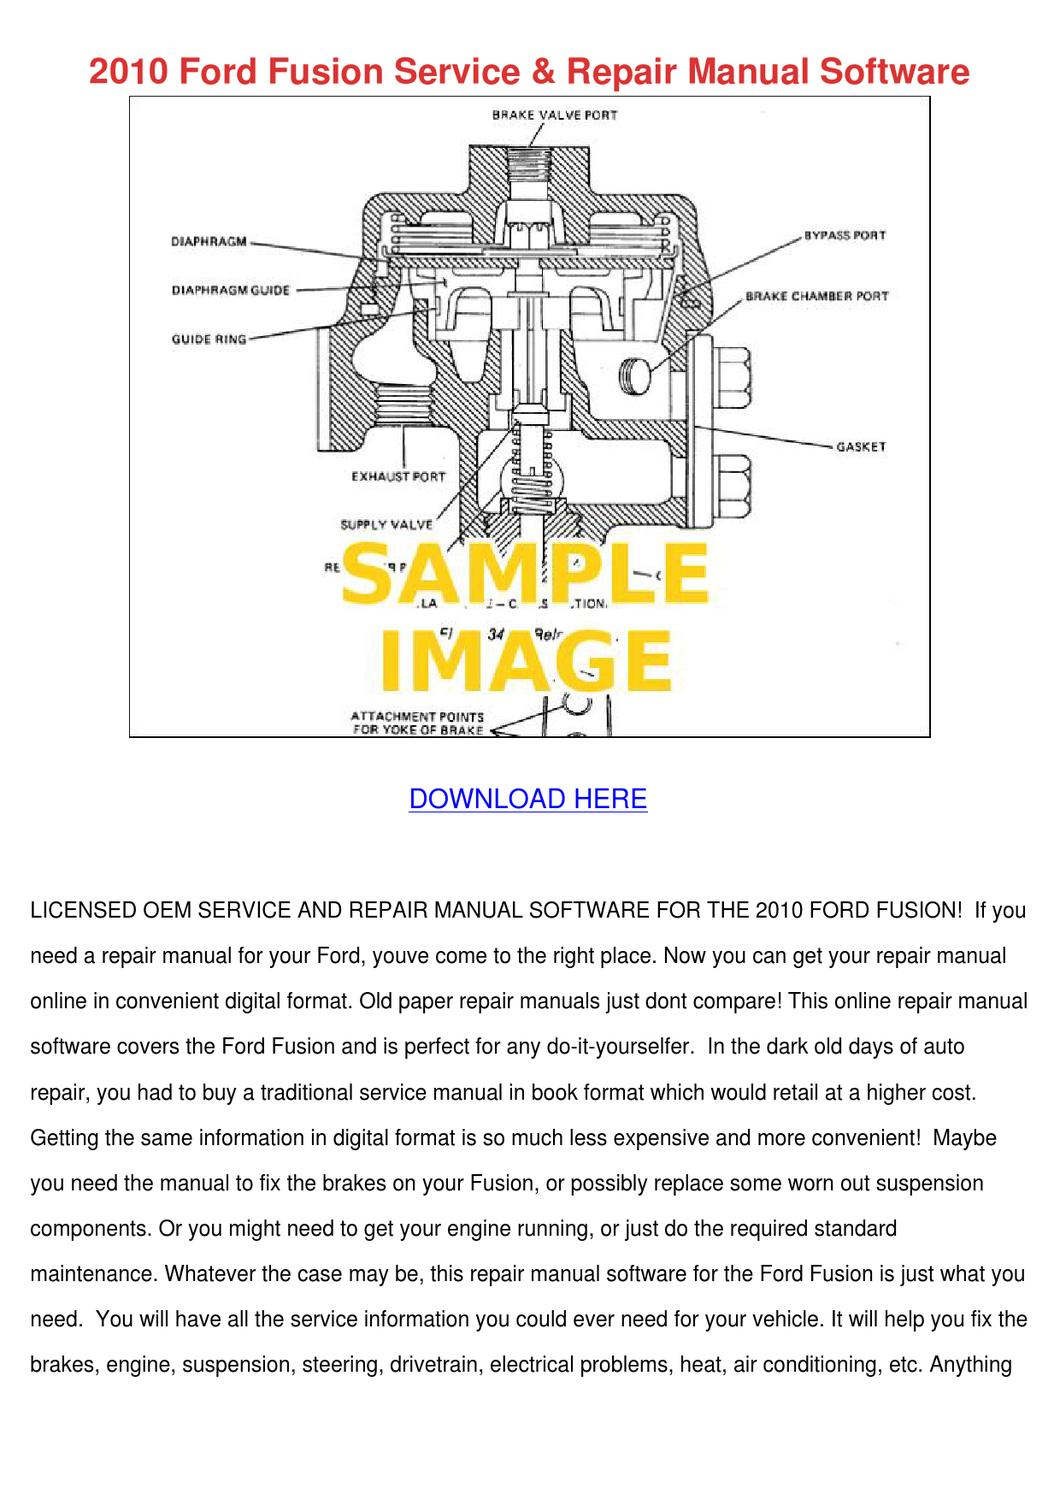 2010 Ford Fusion Service Repair Manual Softwa By Andyyocum